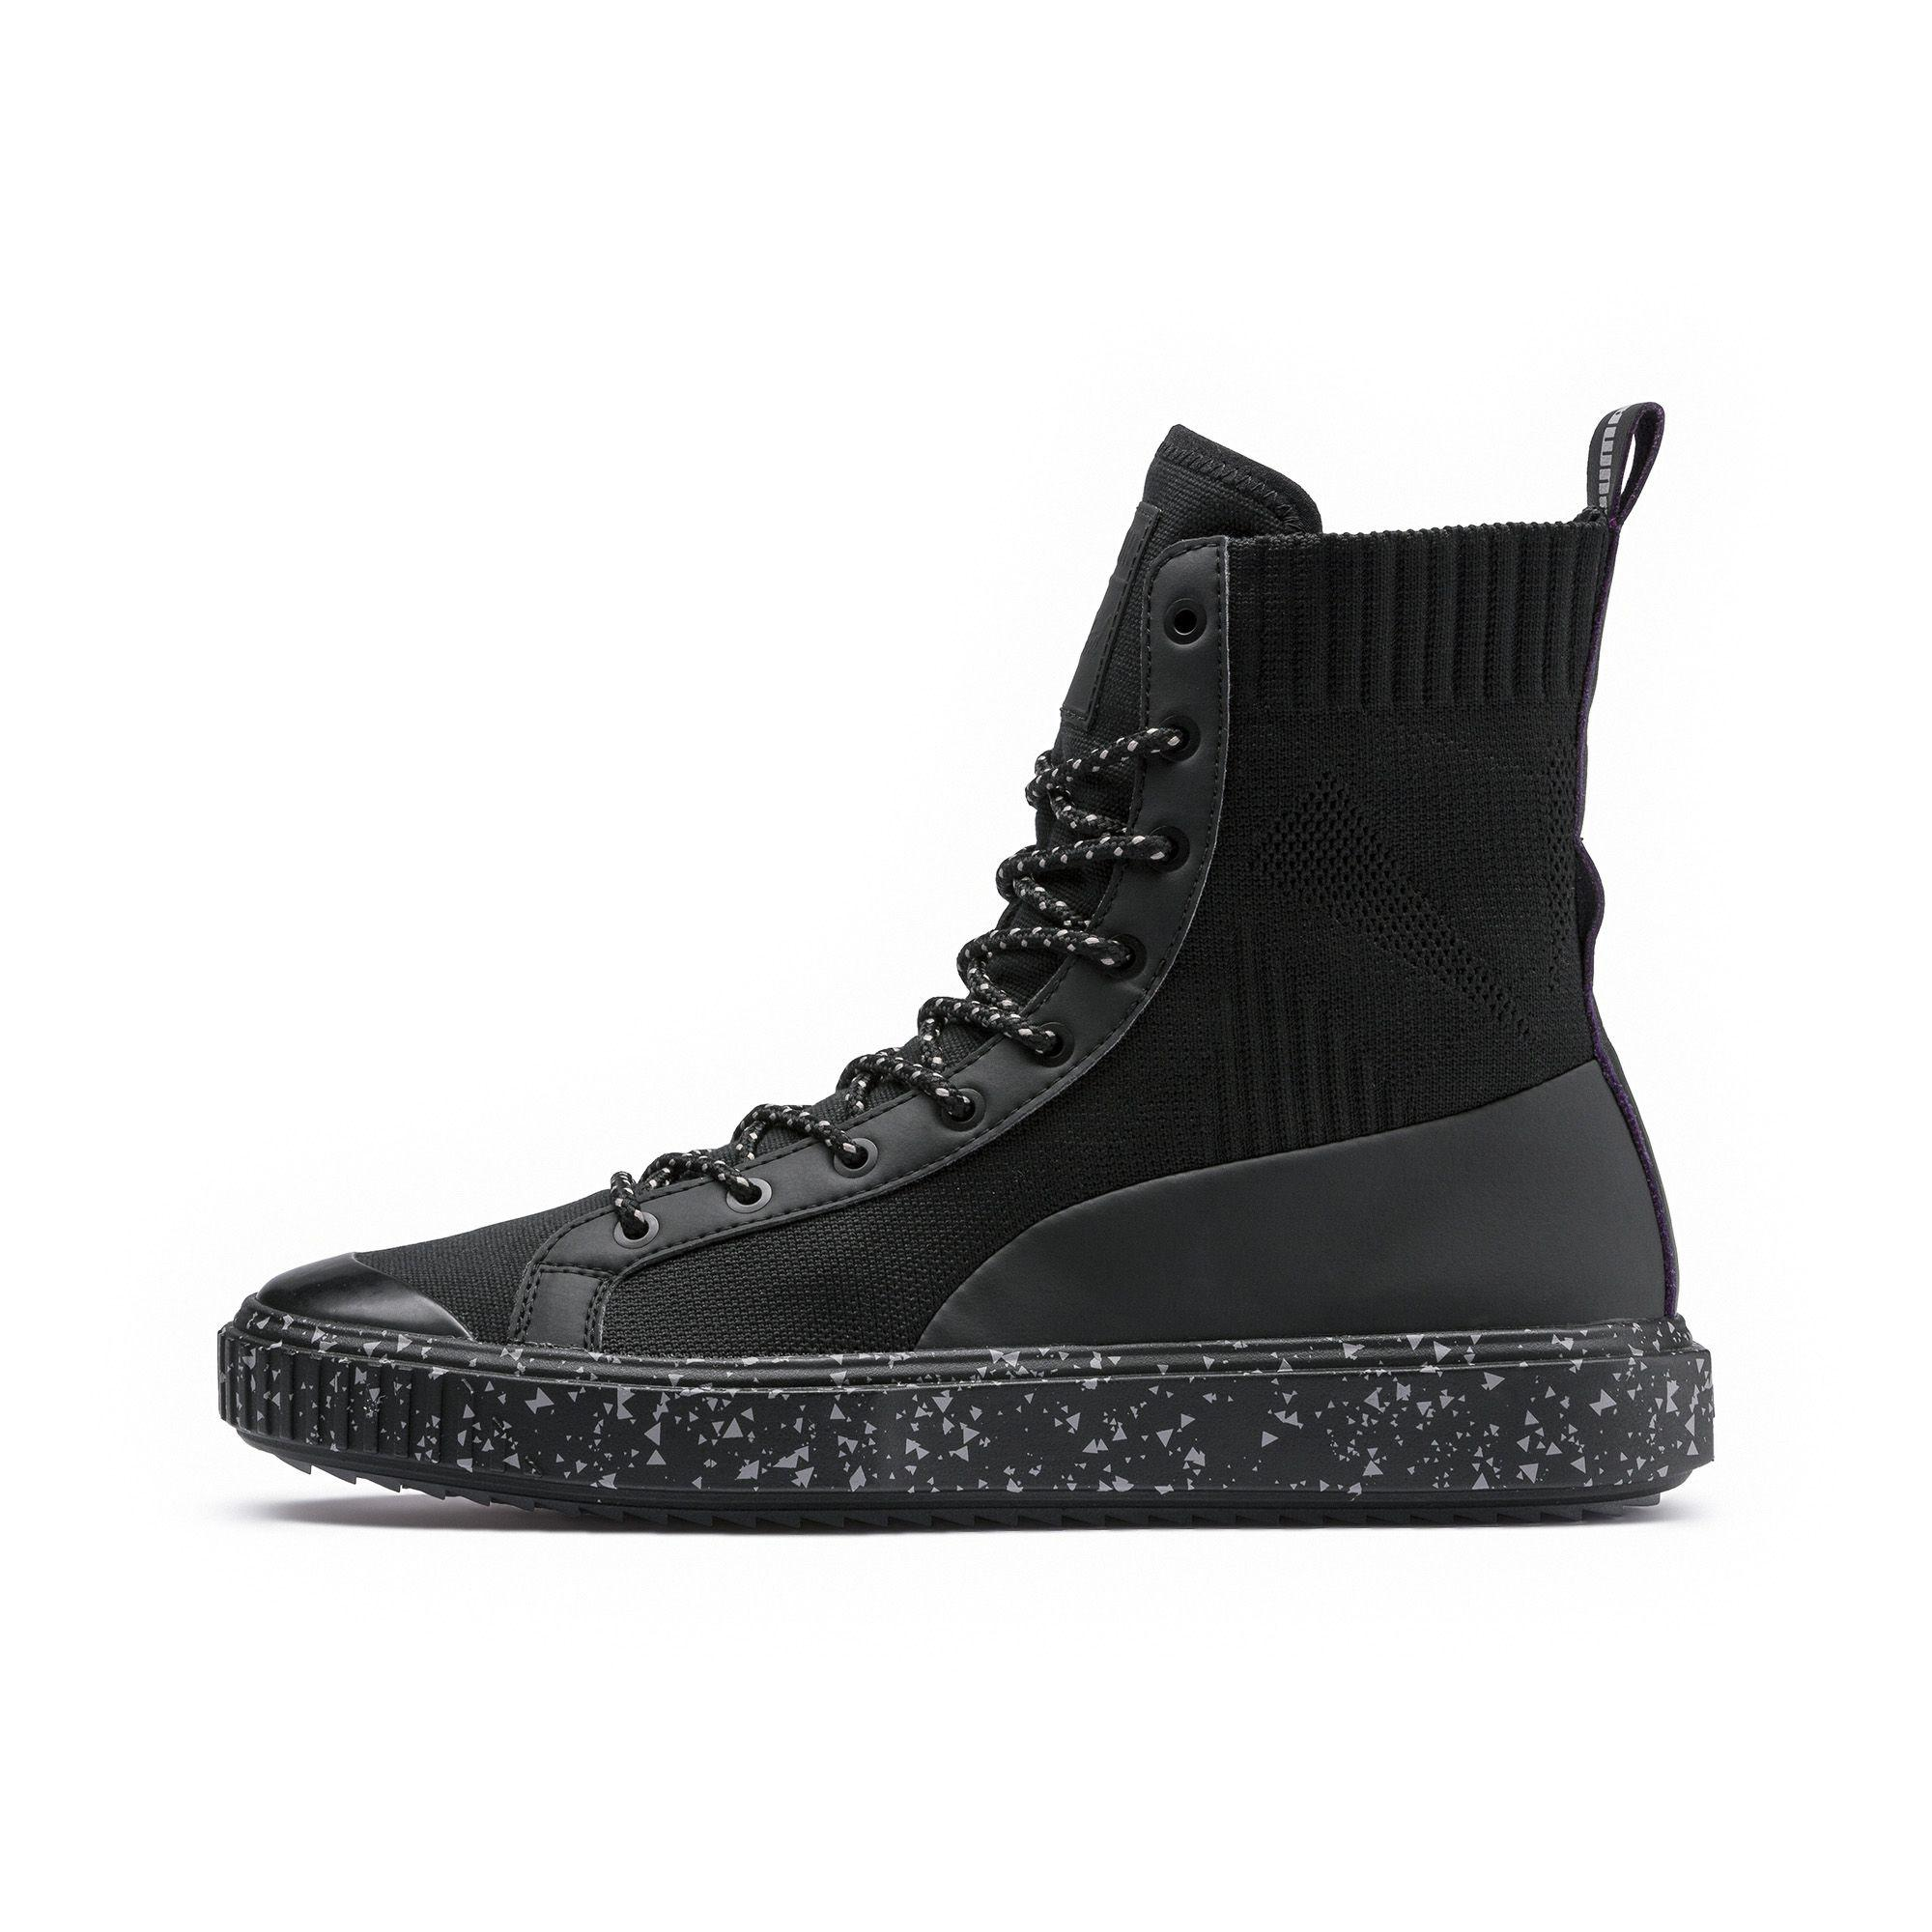 Lyst - PUMA X Naturel Breaker Boot Sneakers in Black for Men f7d94615e